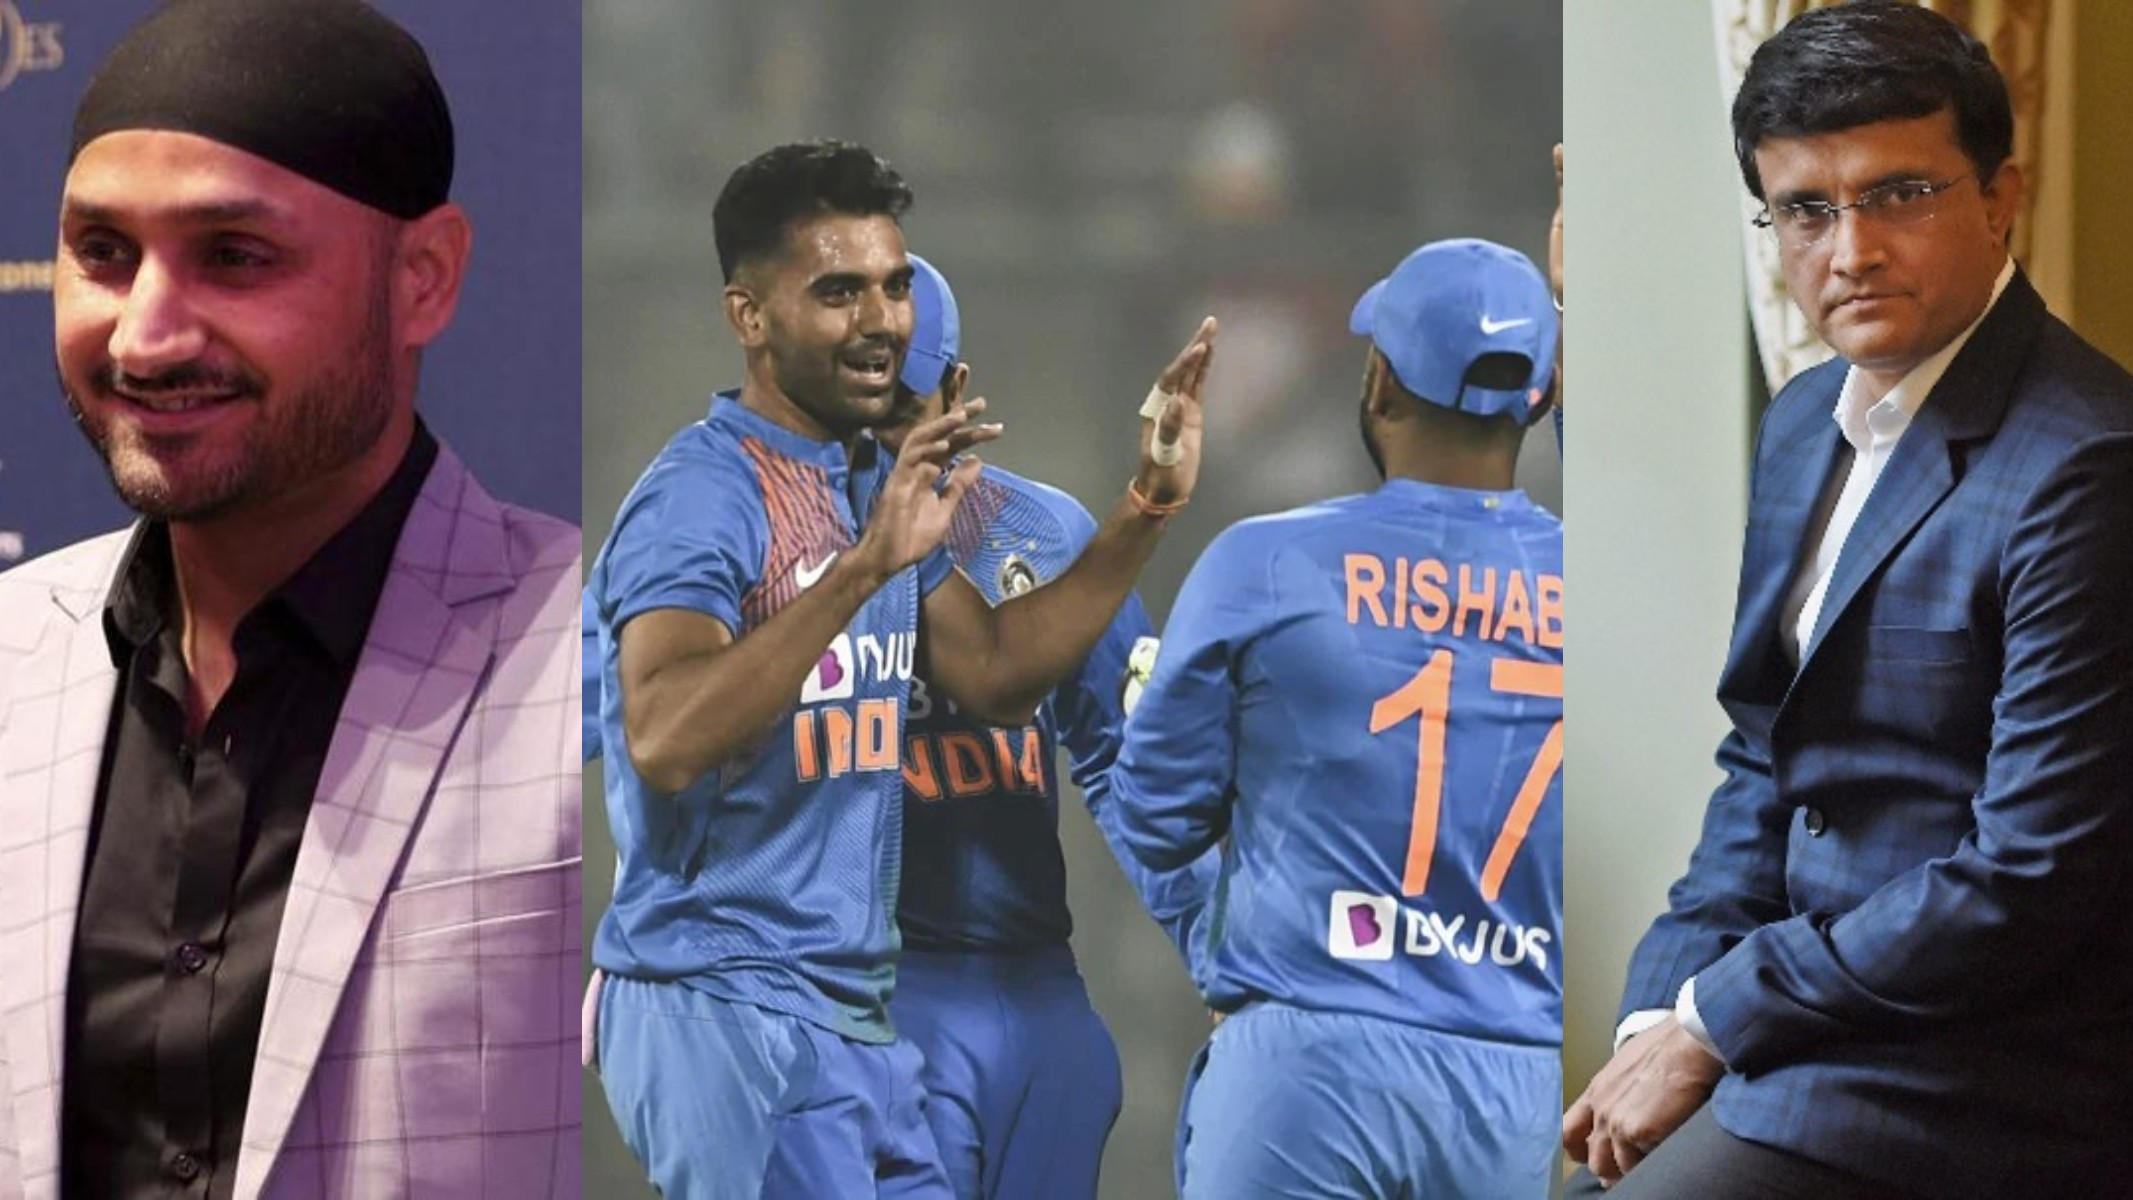 IND v BAN 2019: Cricket fraternity reacts as Deepak Chahar's T20I best 6/7 including a hat-trick wins India the series 2-1